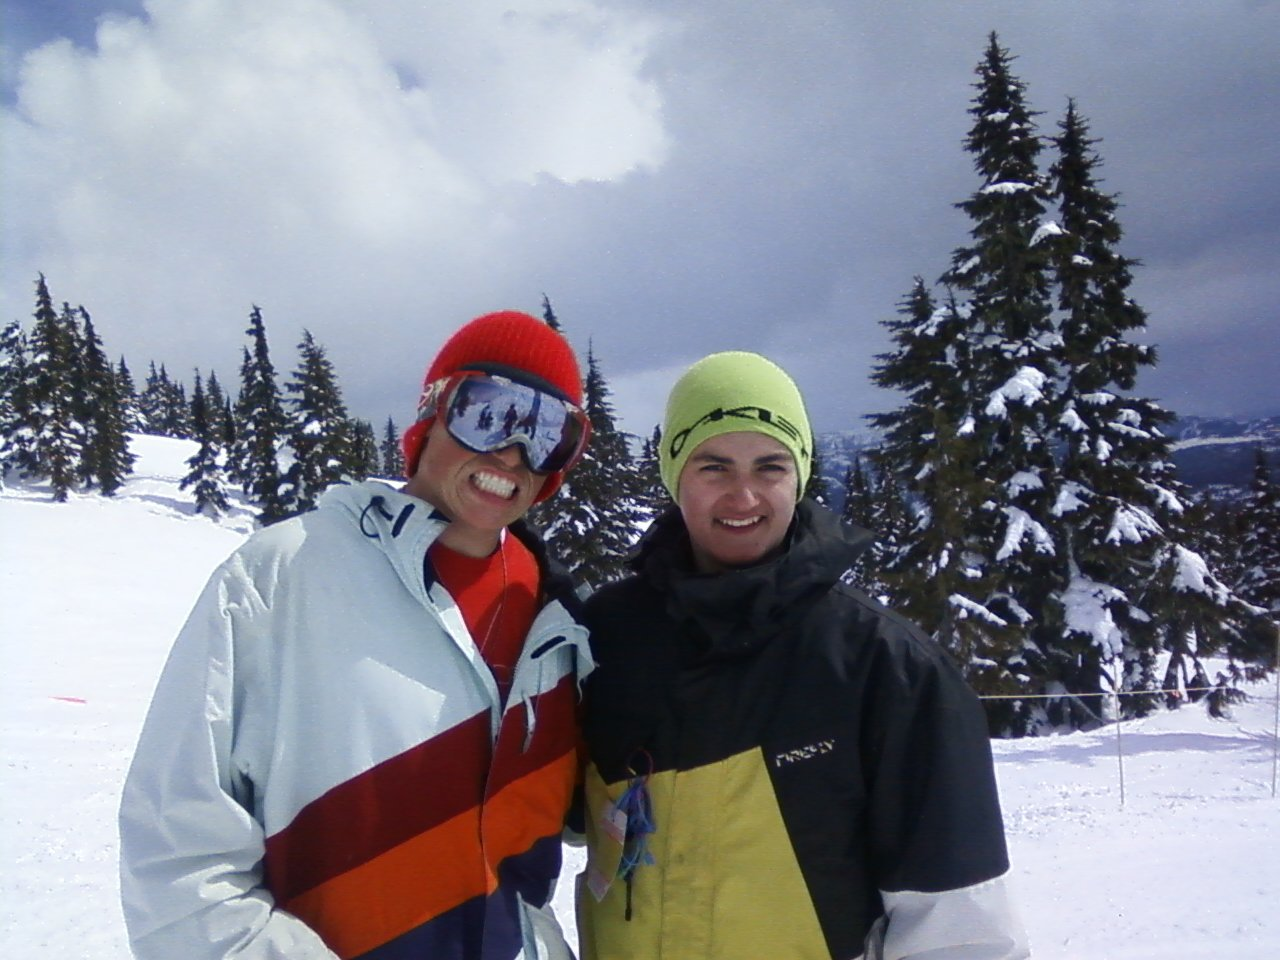 Me and Gus Kenworthy